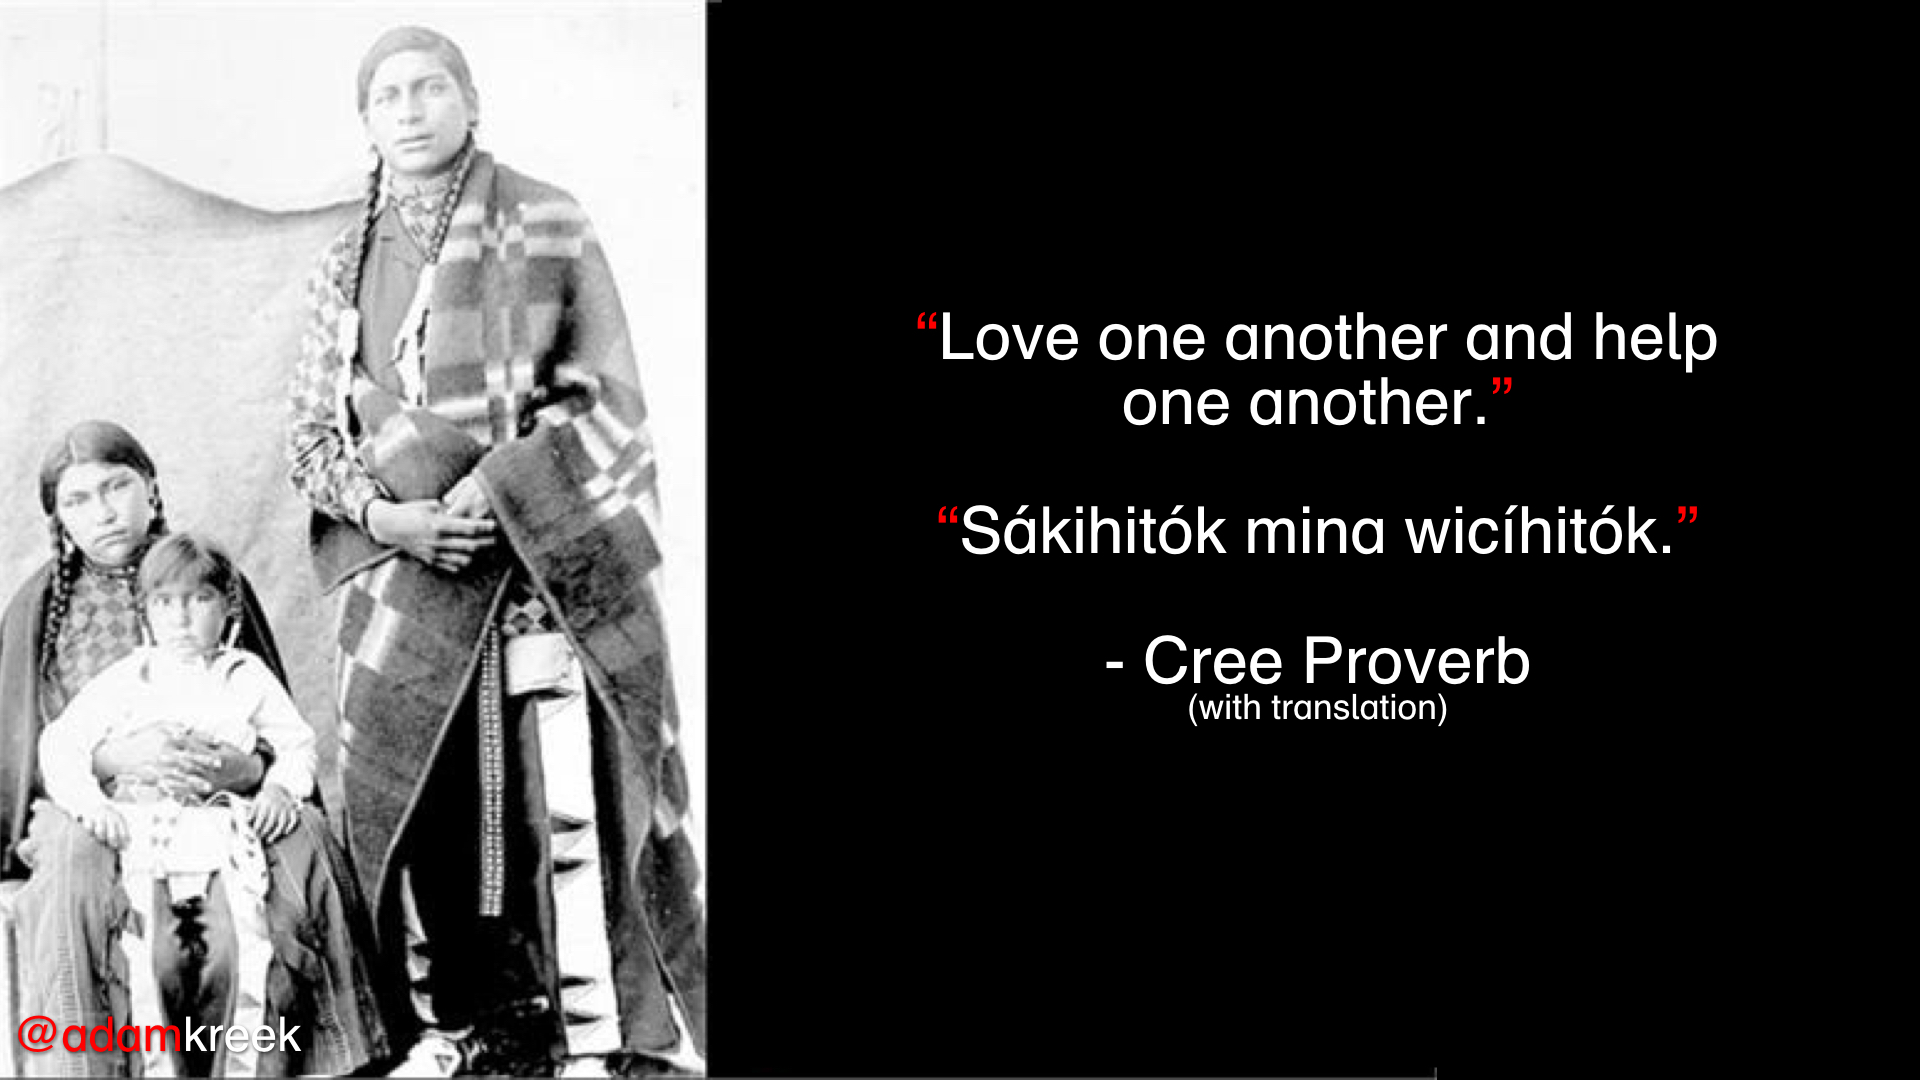 Lonliness: Love one another and help one another. - Cree Proverb